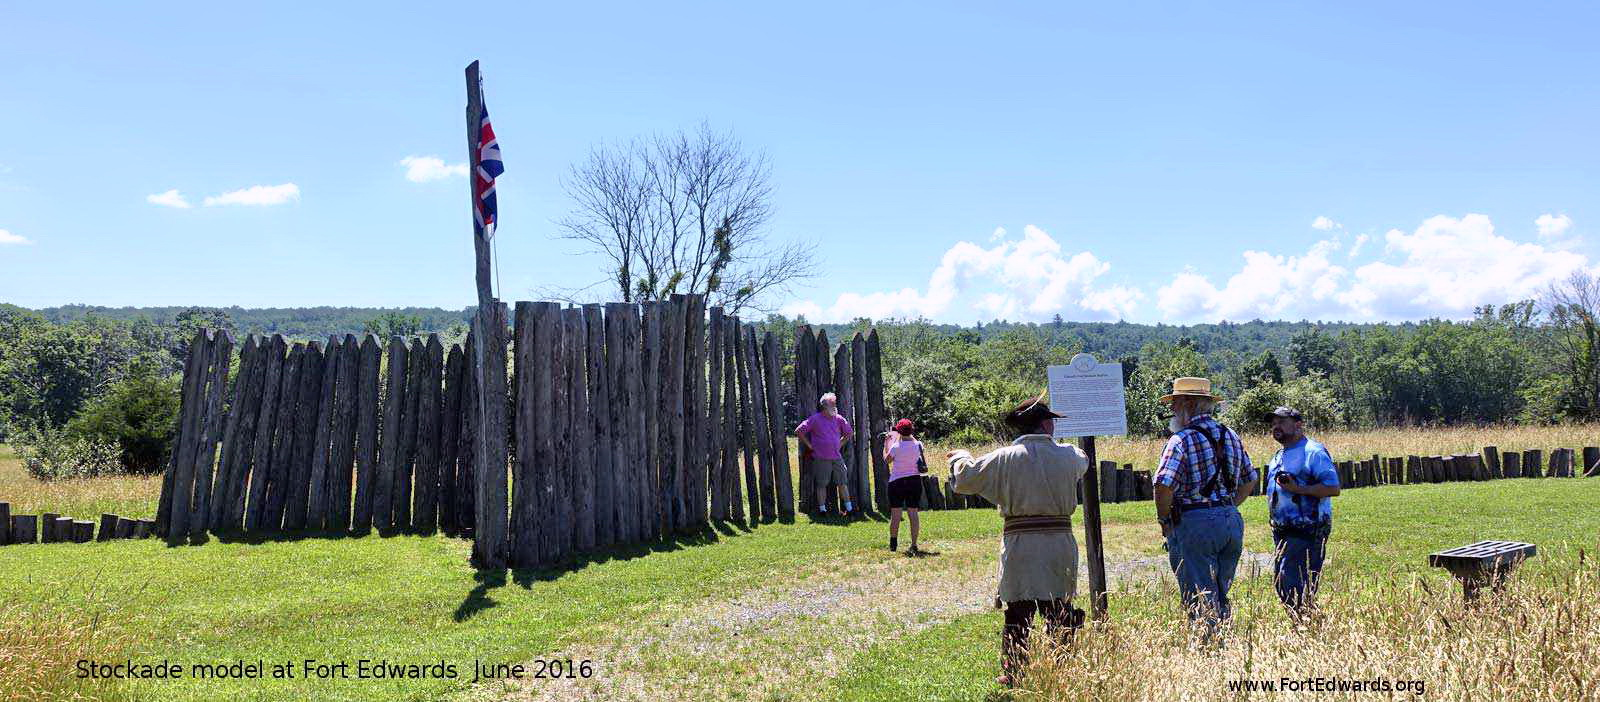 Stockade Reconstruction at Fort Edwards